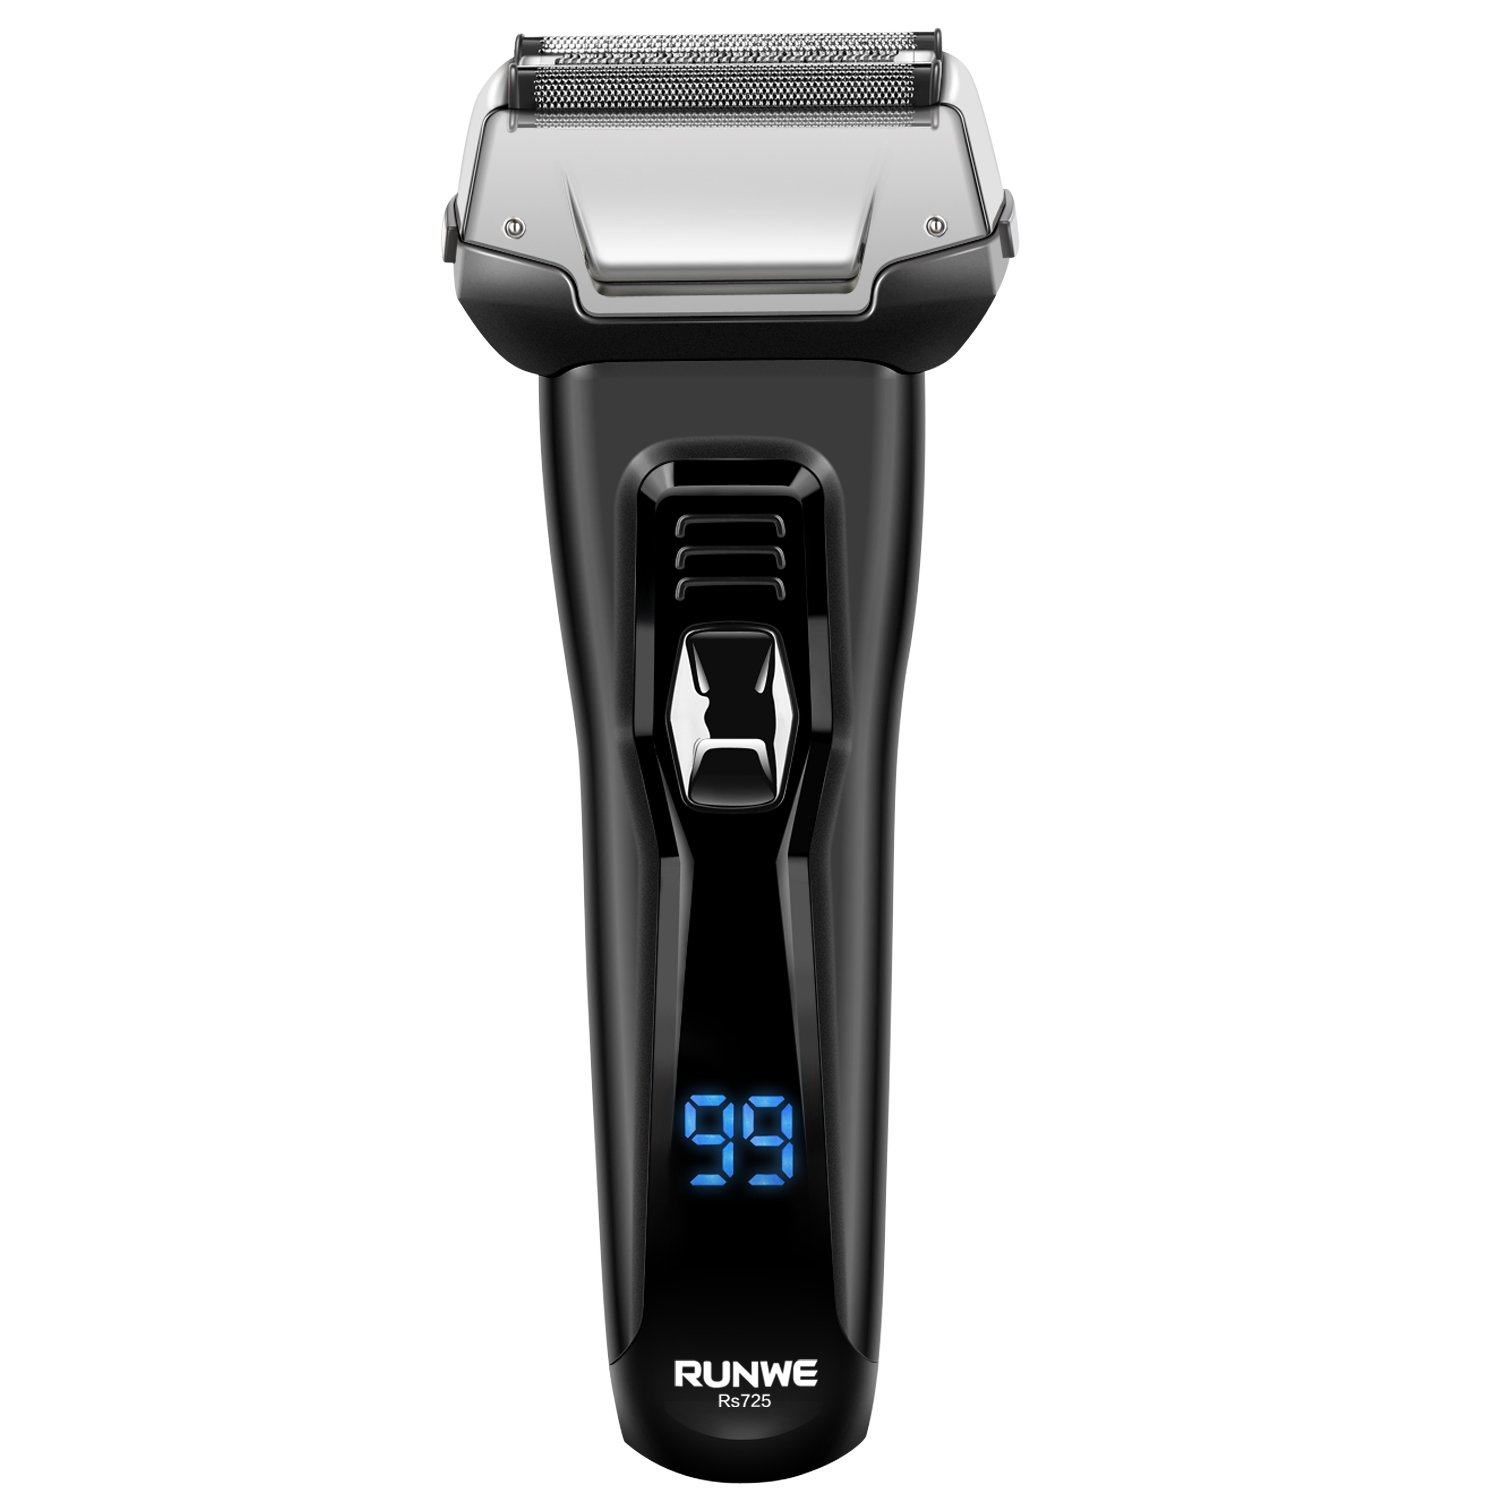 Runwe RS725 Wet & Dry Foil Shaver Rechargeable Electric Razor IPX6 Waterproof for Men